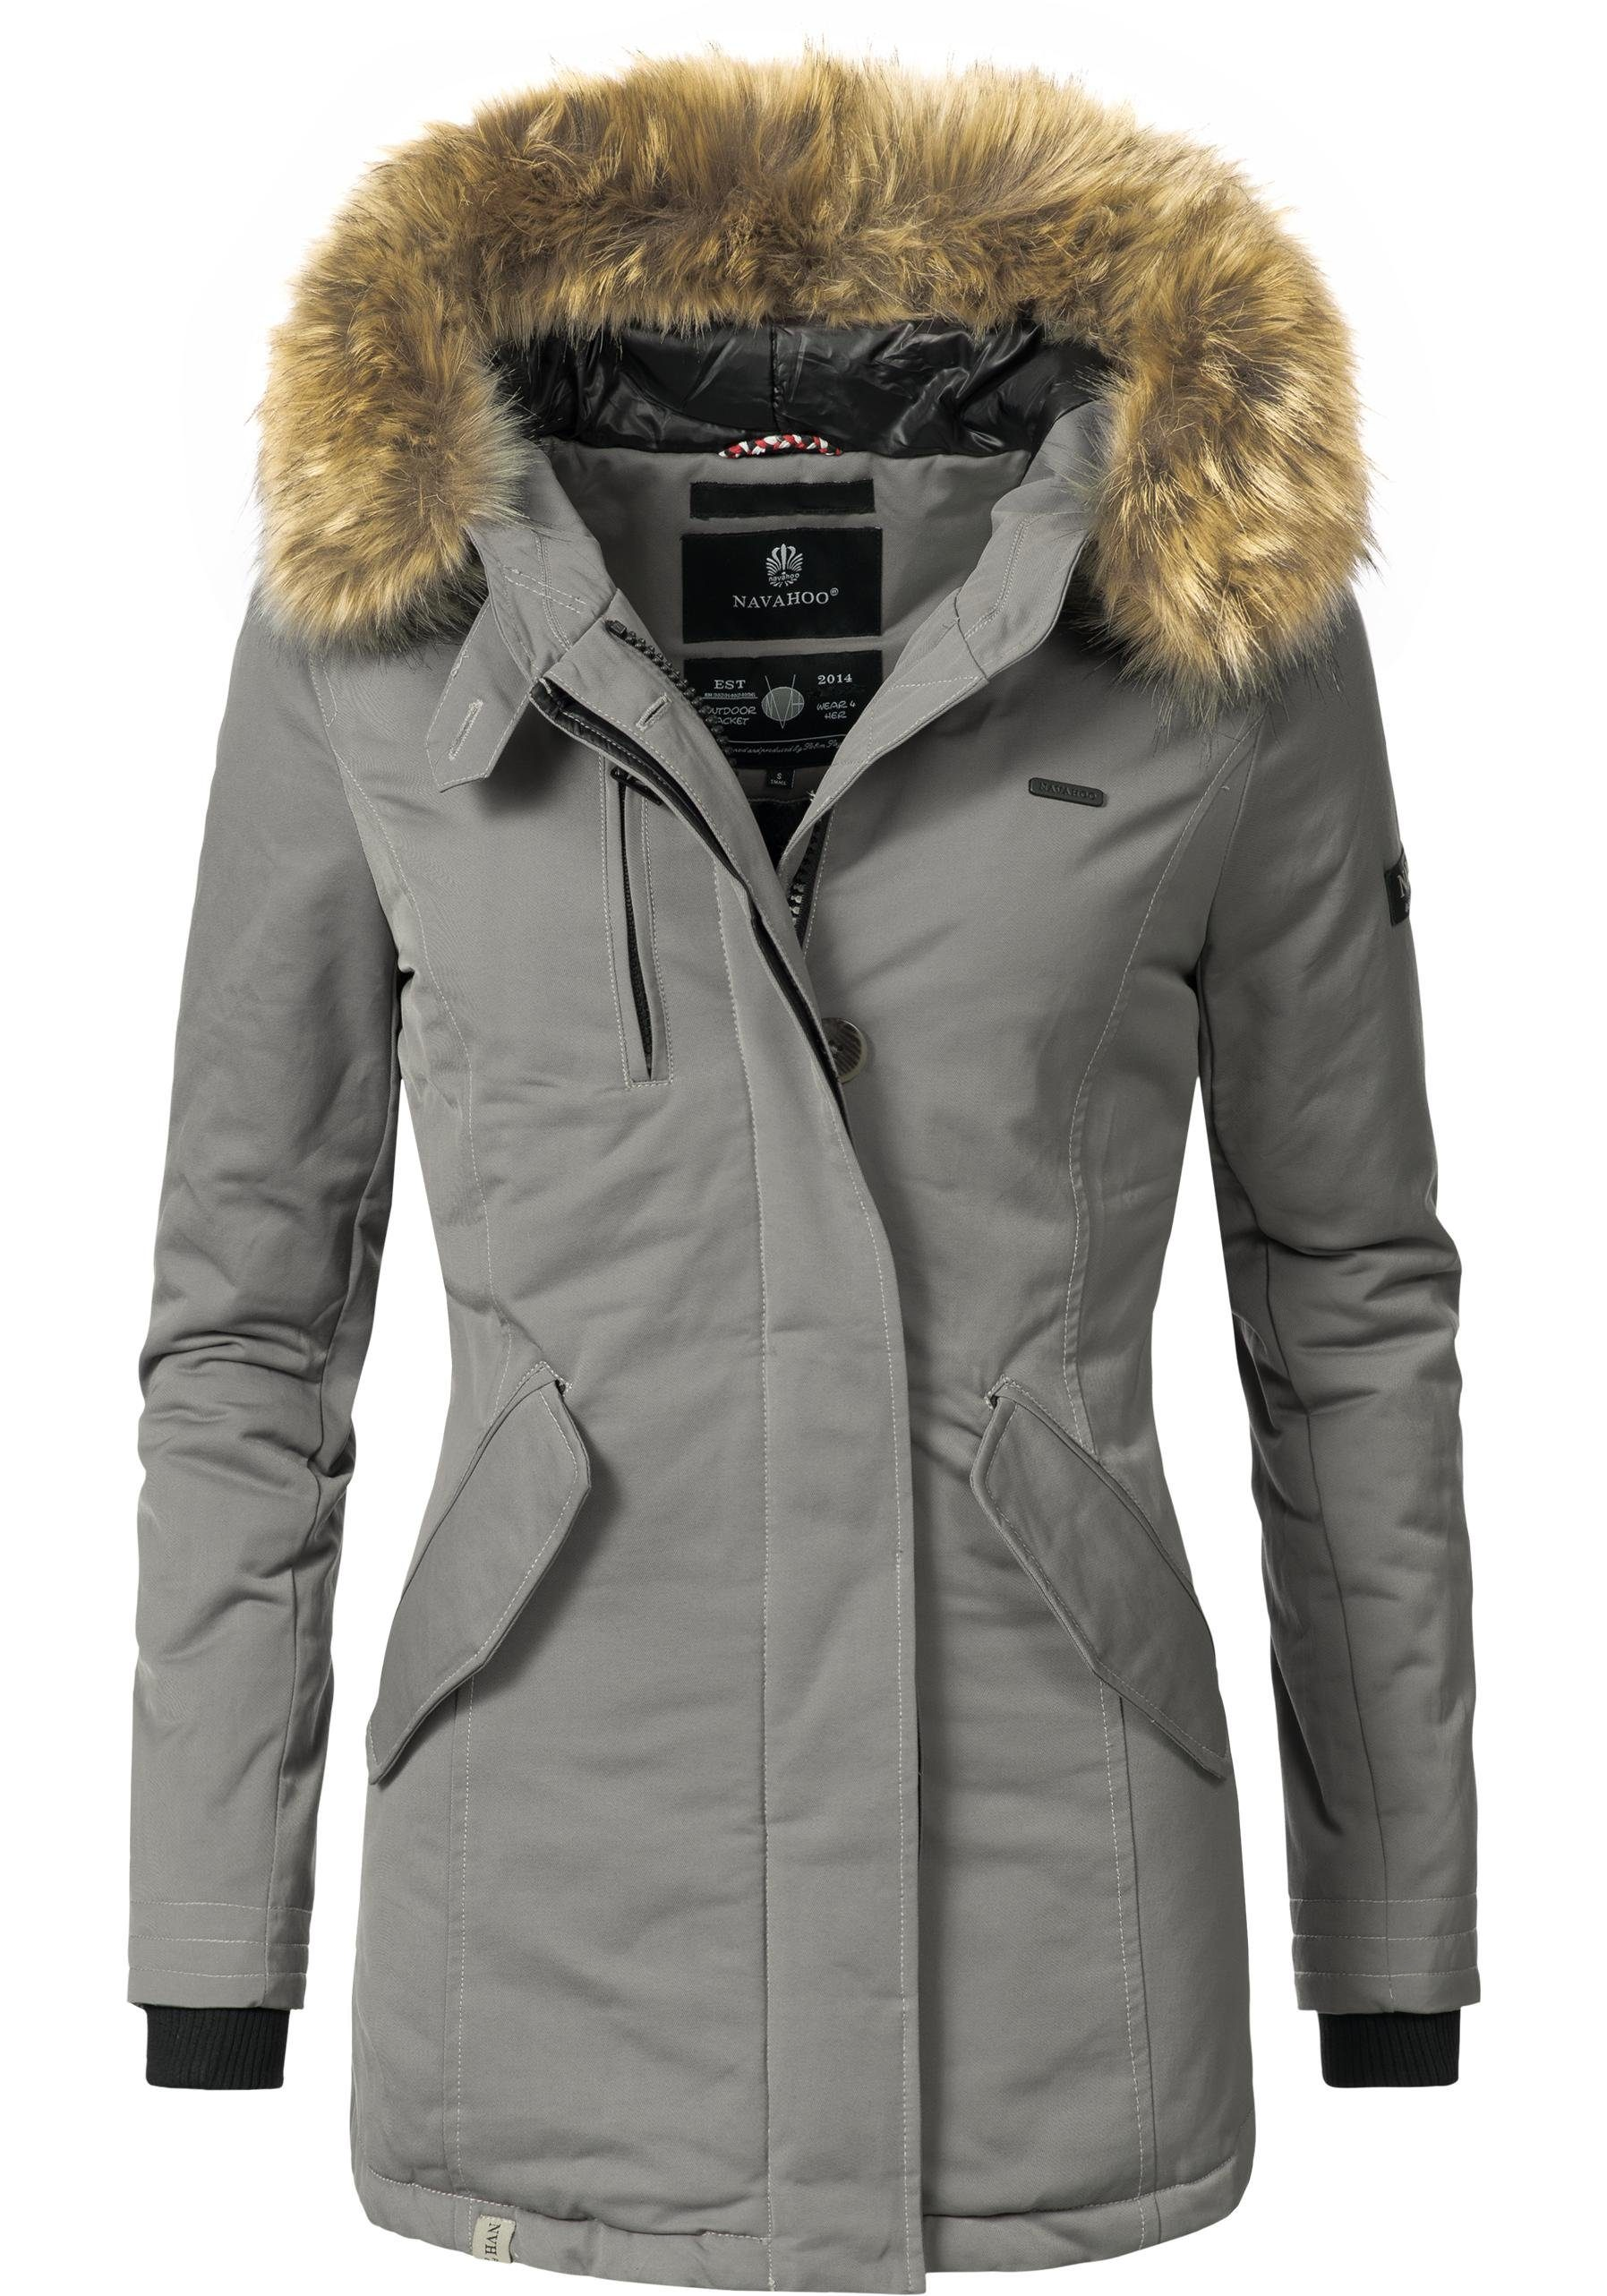 Edle Damen Winterjacke in Wildleder Optik mit Kunstfell, 109